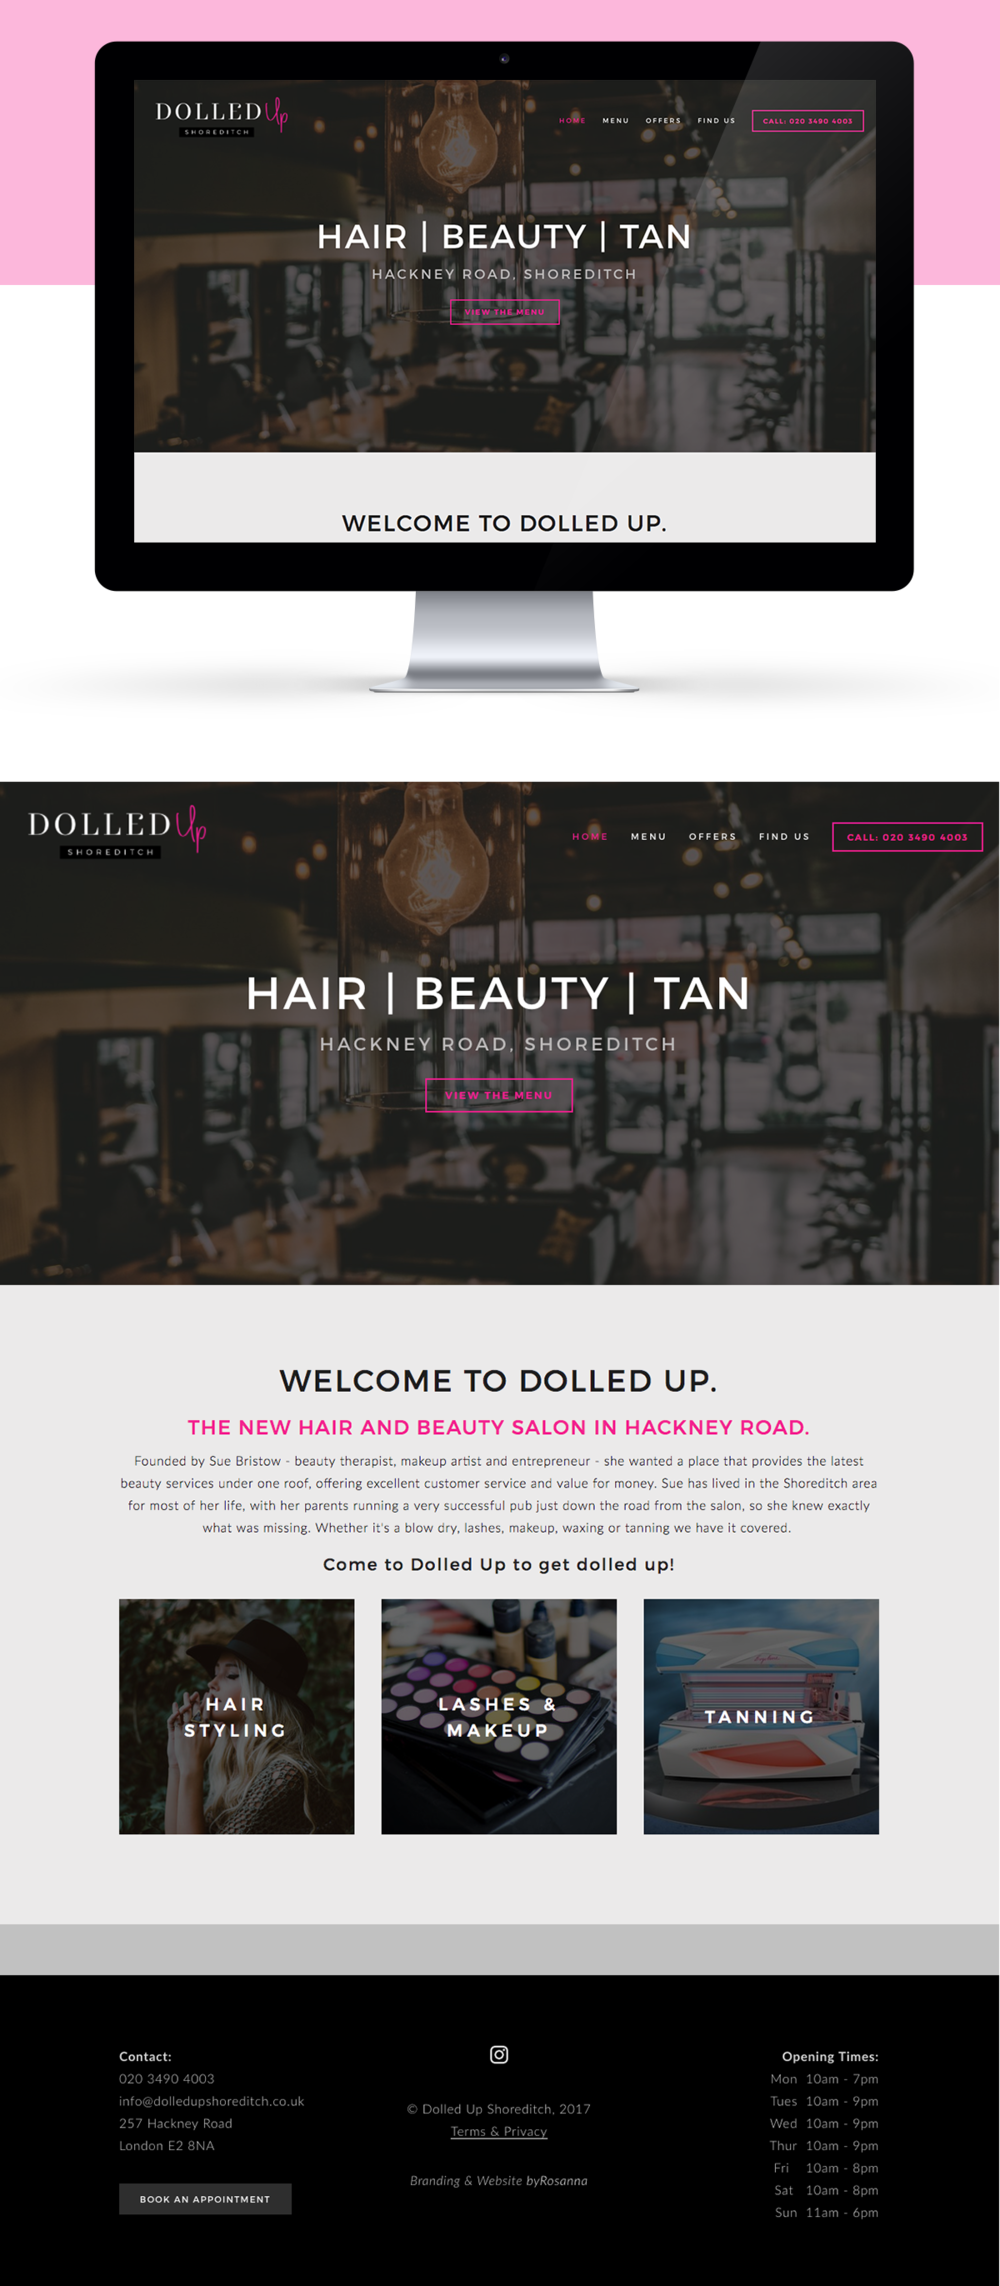 Dolled Up website design